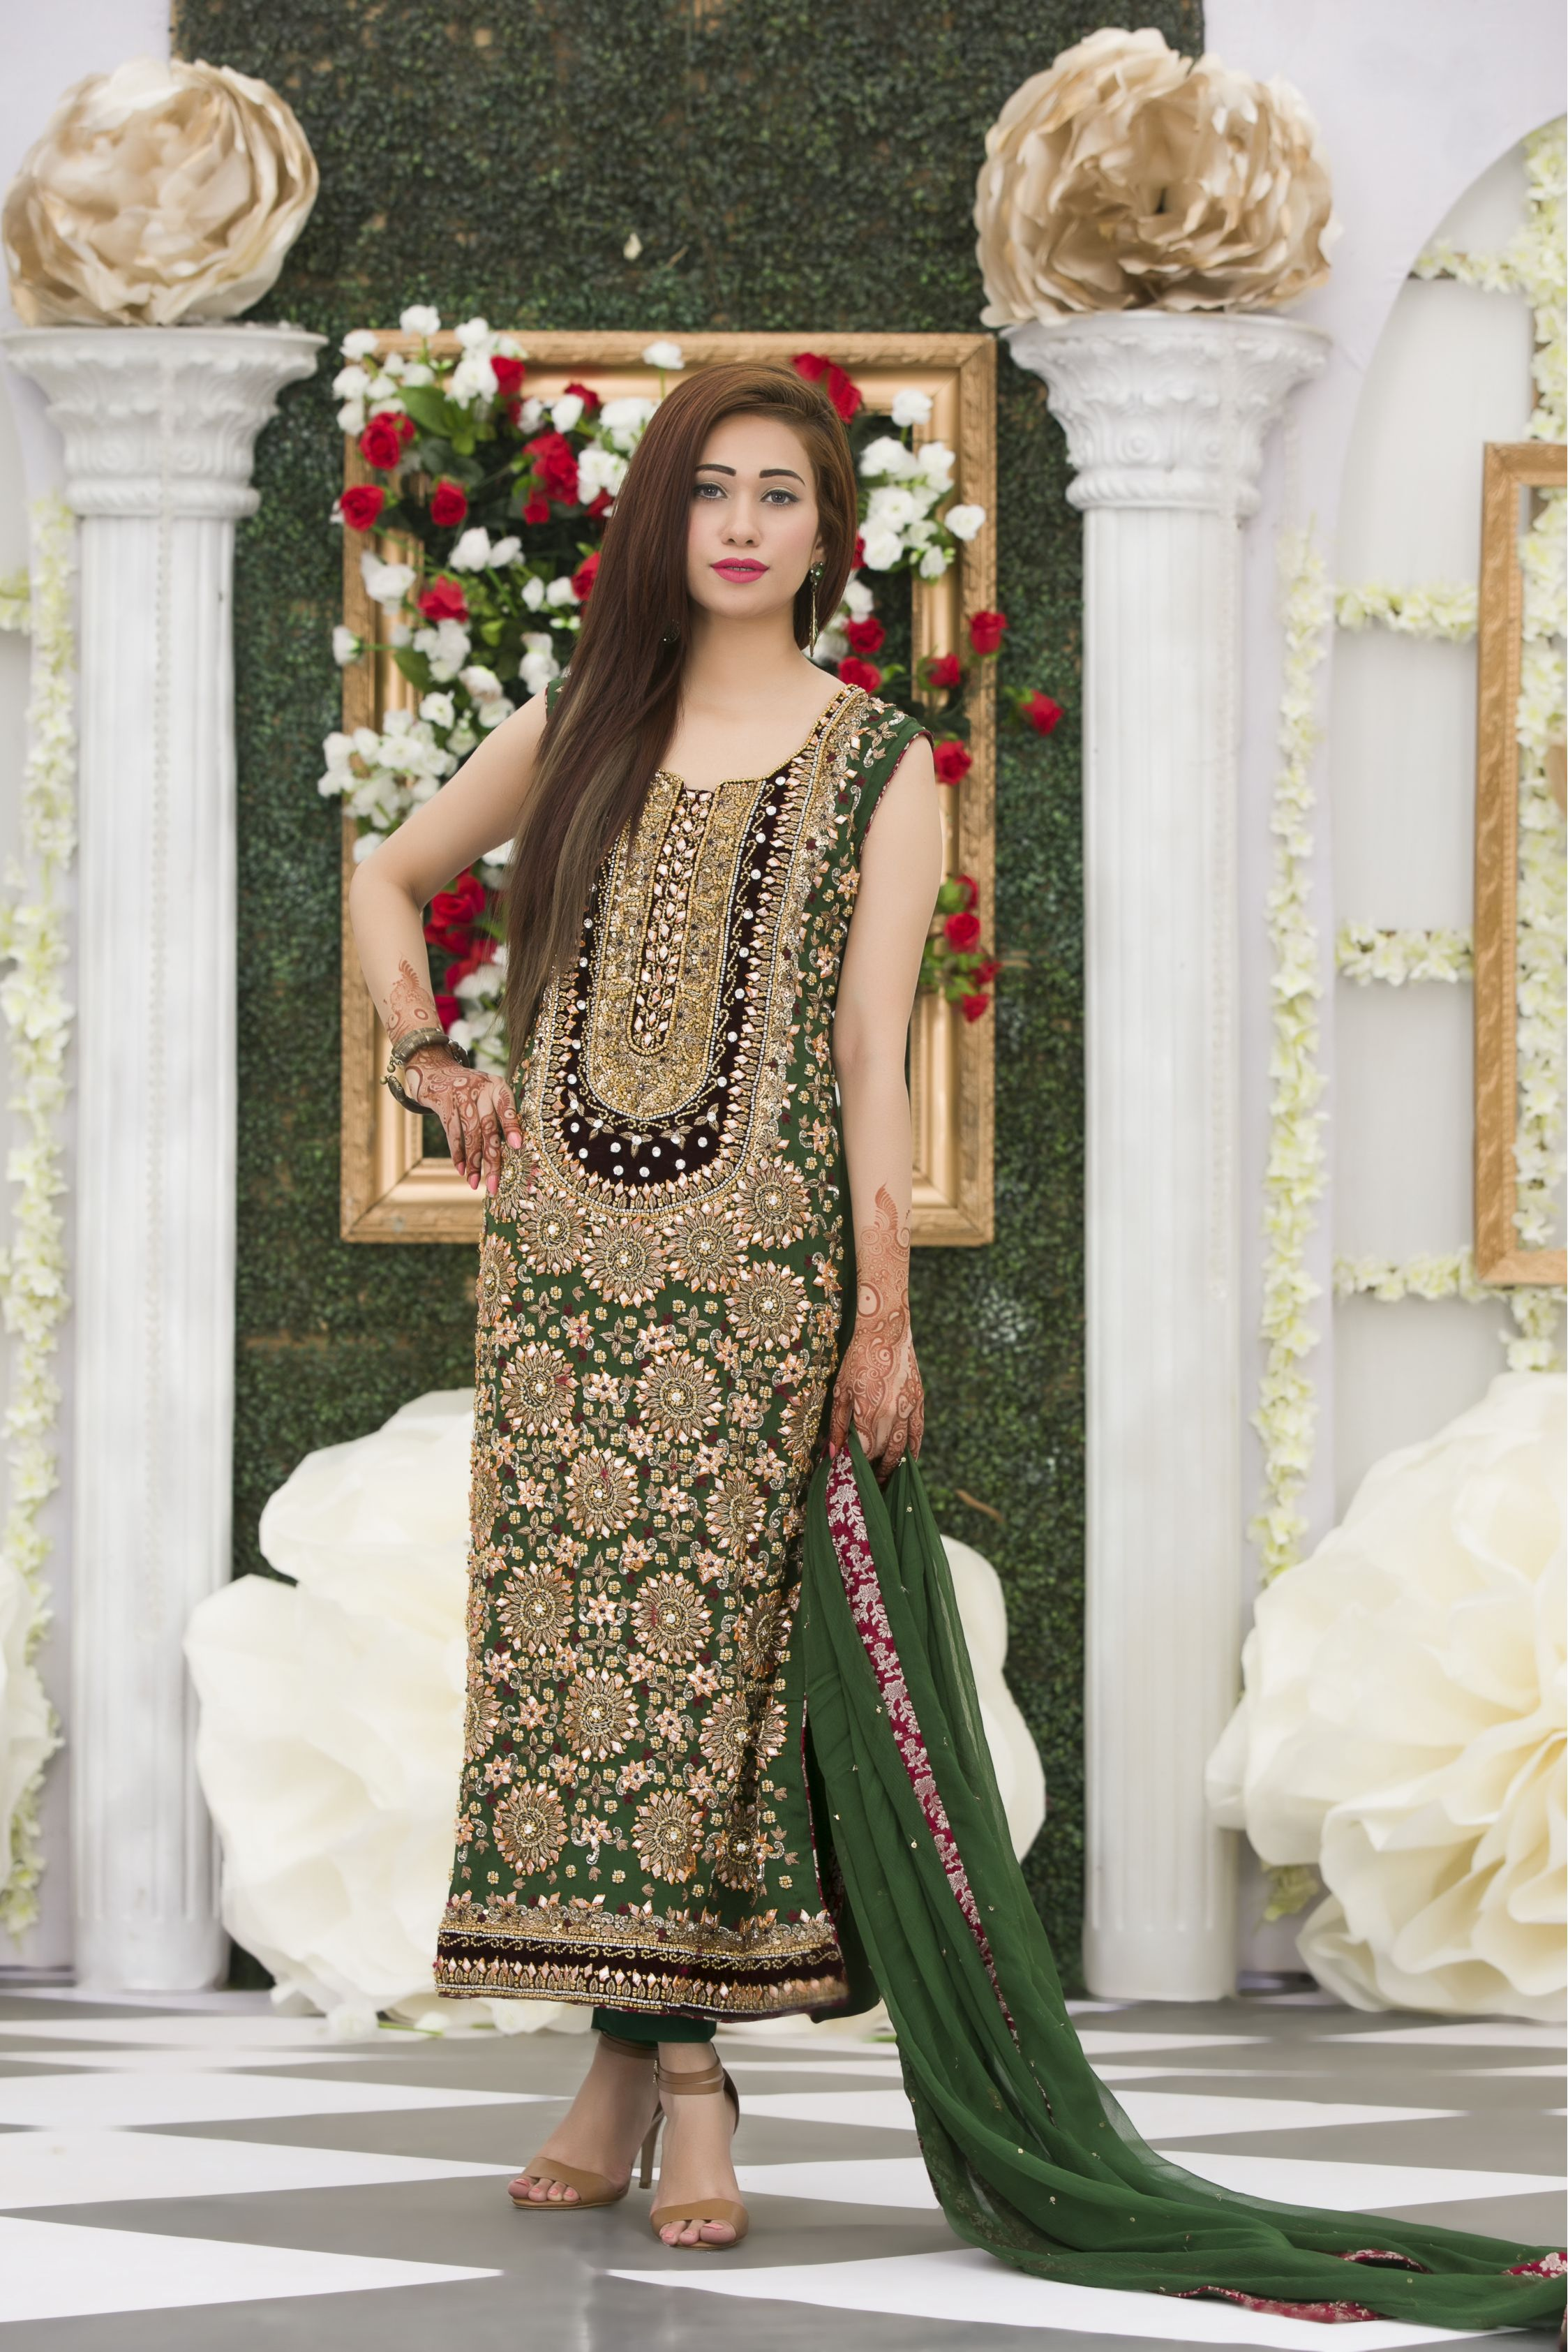 EXCLUSIVE BOTTLE GREEN MEHNDI DRESS